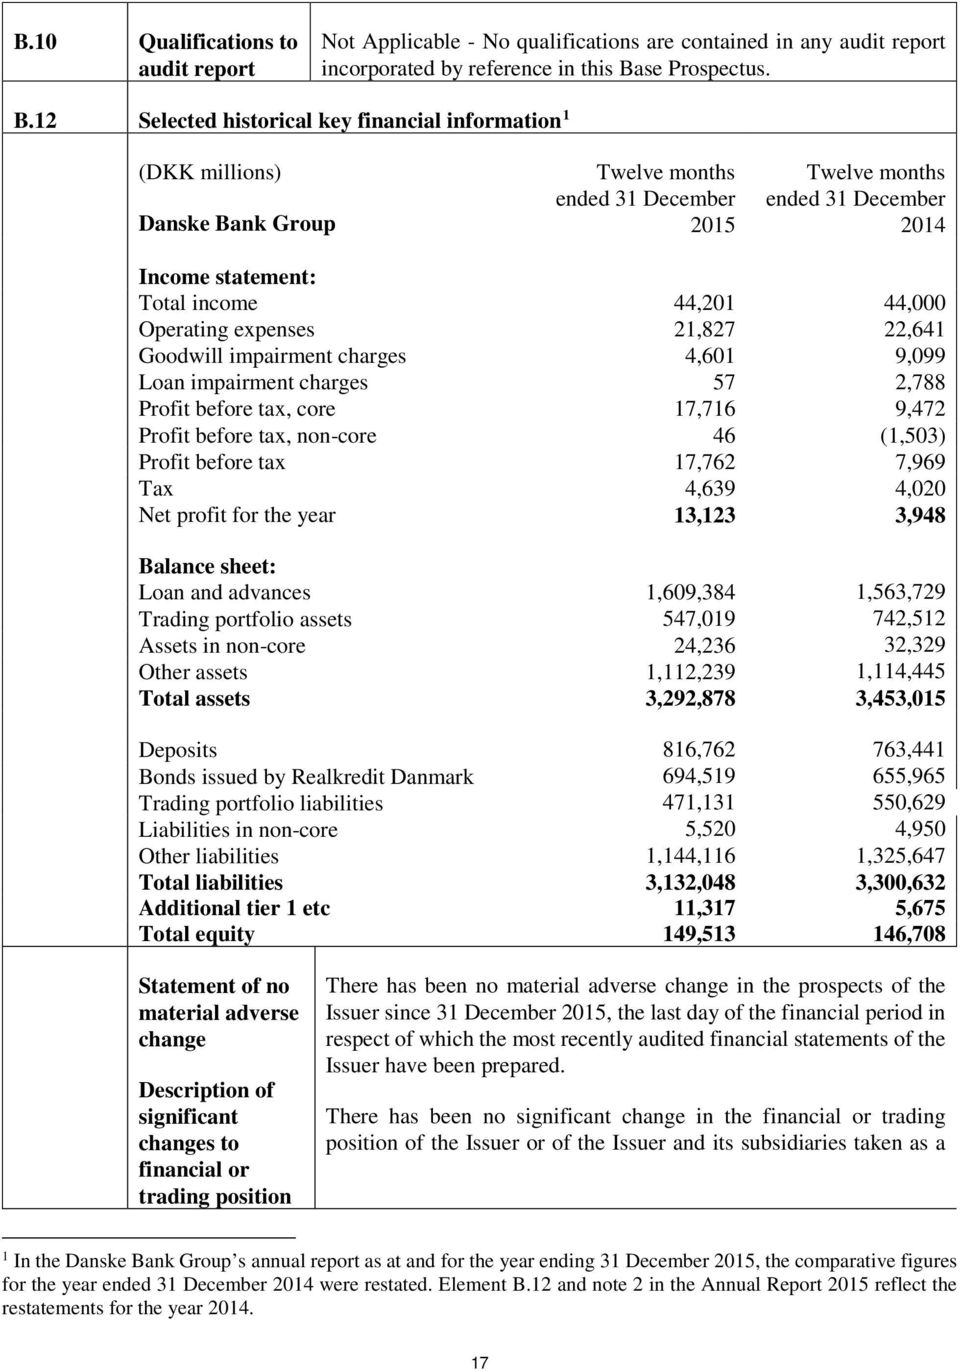 12 Selected historical key financial information 1 (DKK millions) Danske Bank Group Twelve months ended 31 December 2015 Twelve months ended 31 December 2014 Income statement: Total income 44,201